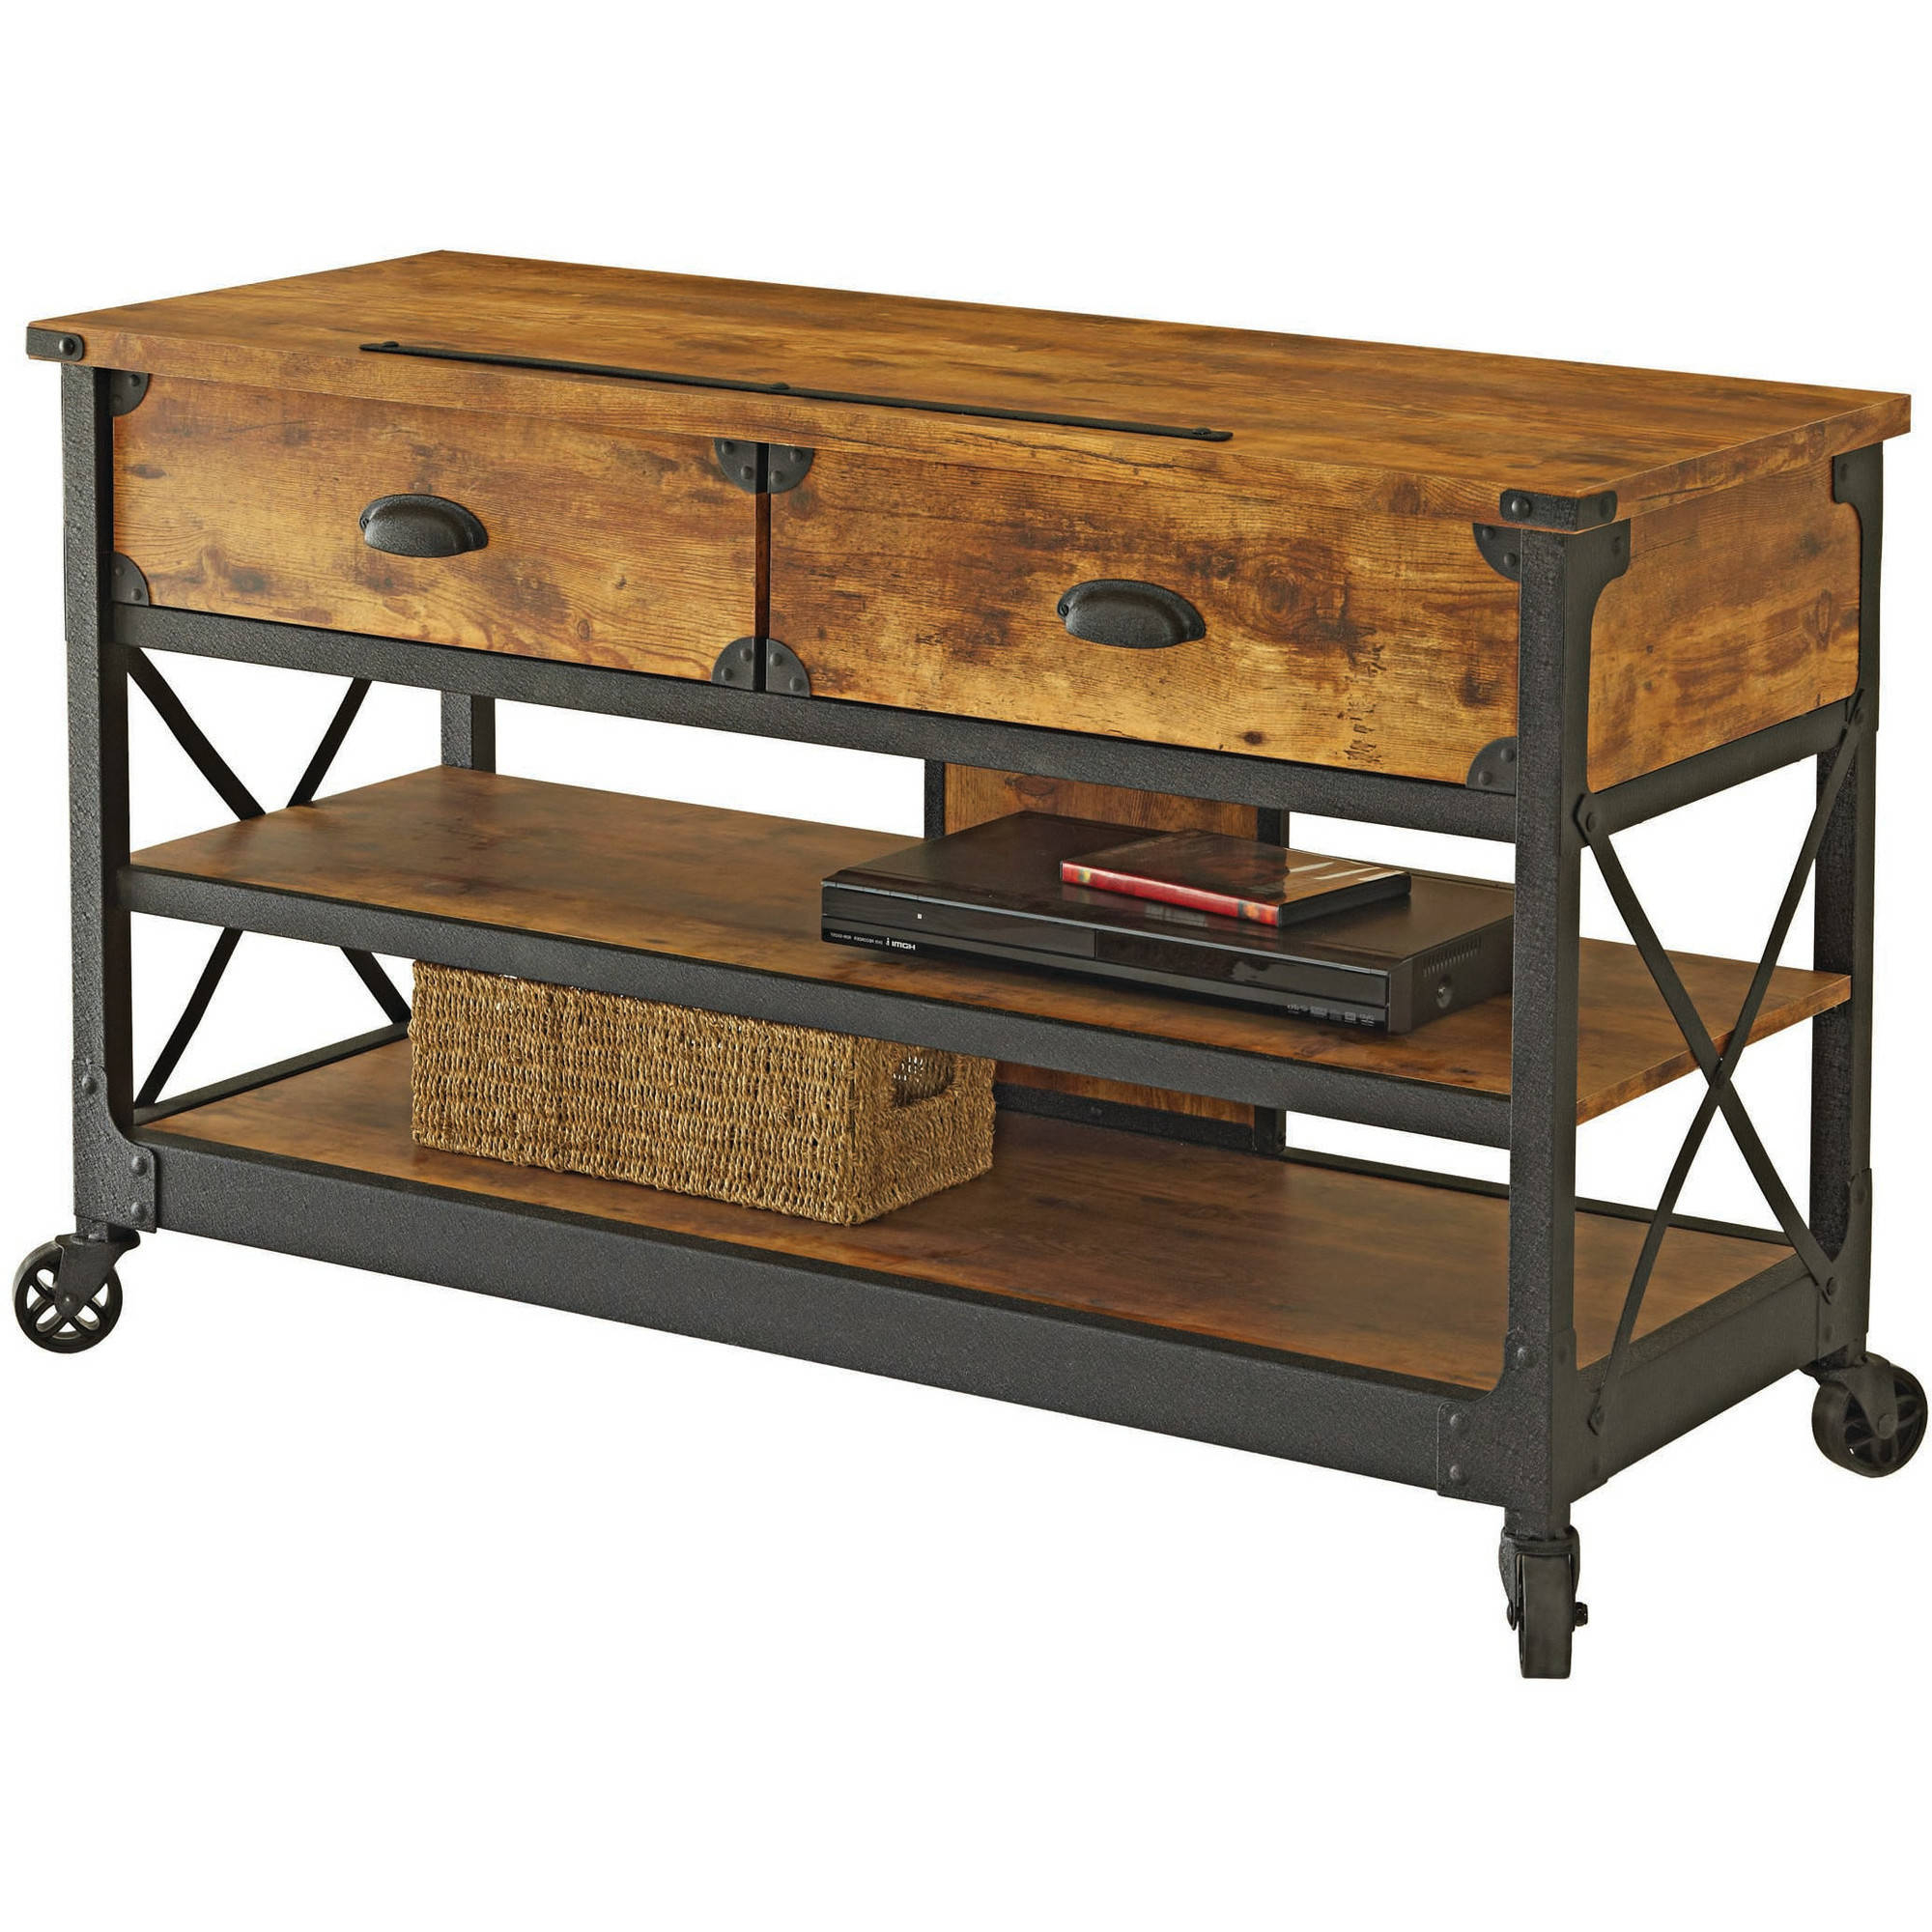 Favorite Better Homes & Gardens Rustic Country Tv Stand For Tvs Up To 52 Intended For Rustic Tv Cabinets (View 5 of 20)